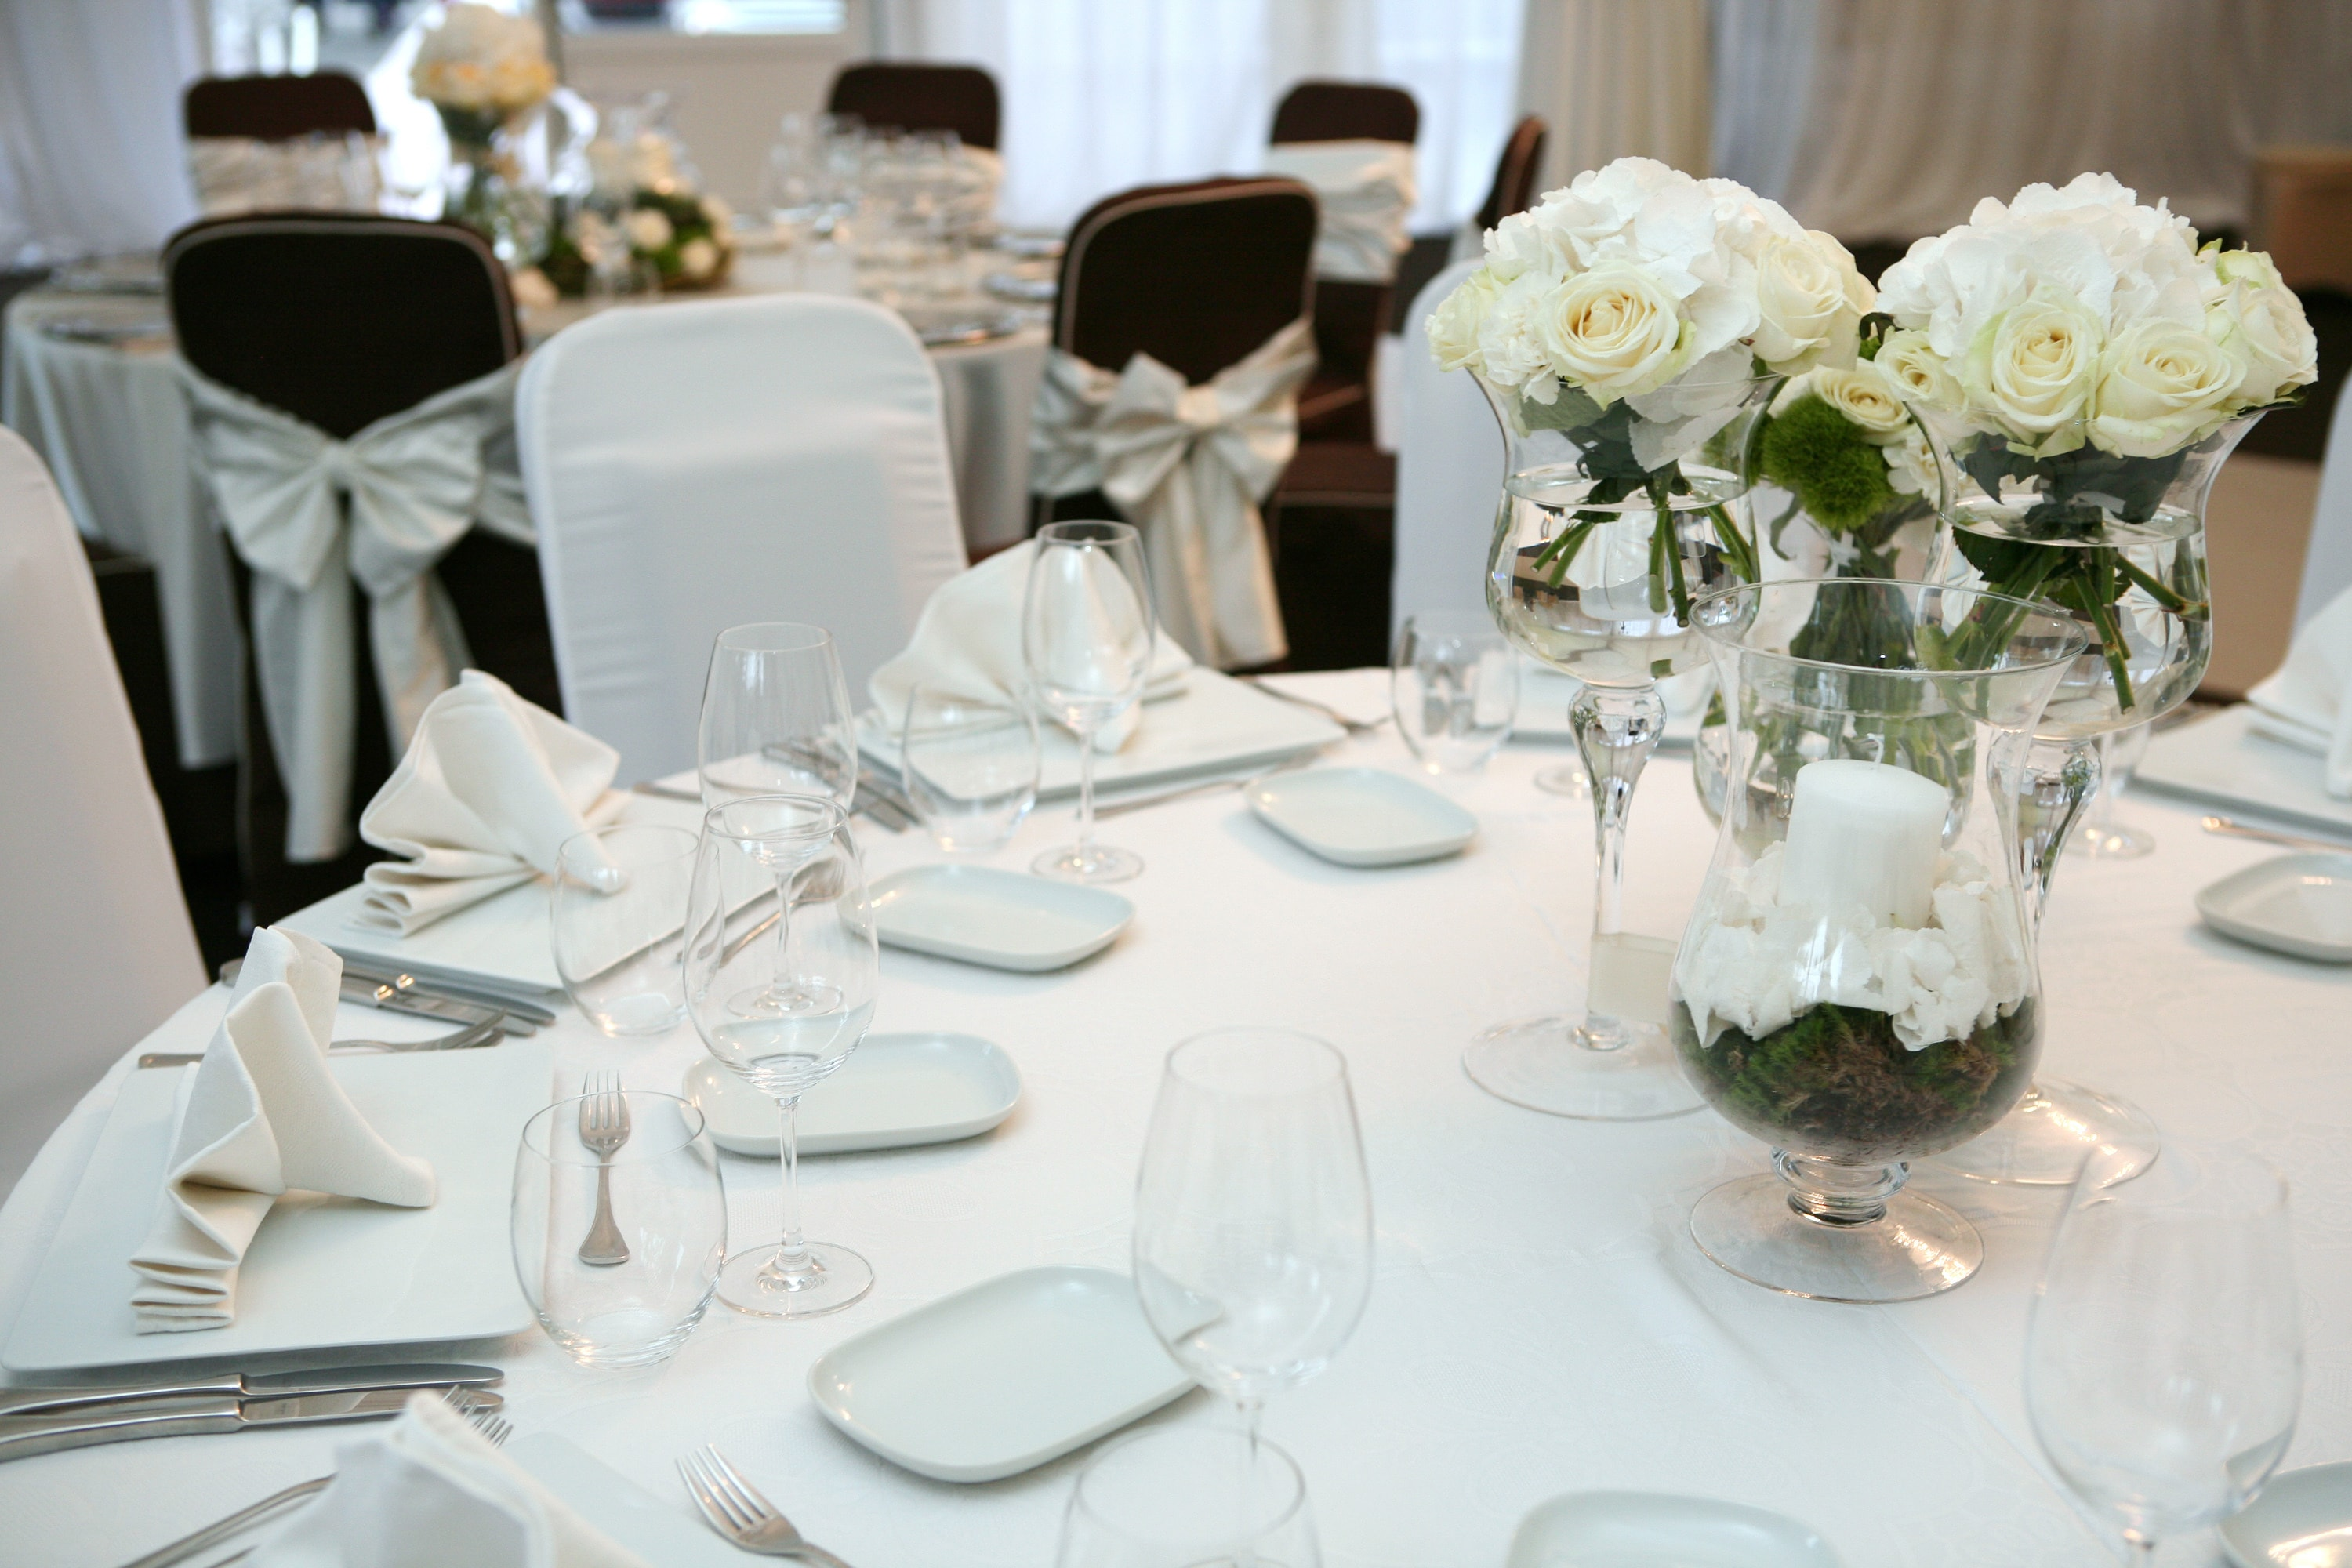 table setting with white table cloth, cloth napkins and fresh flower centerpeices